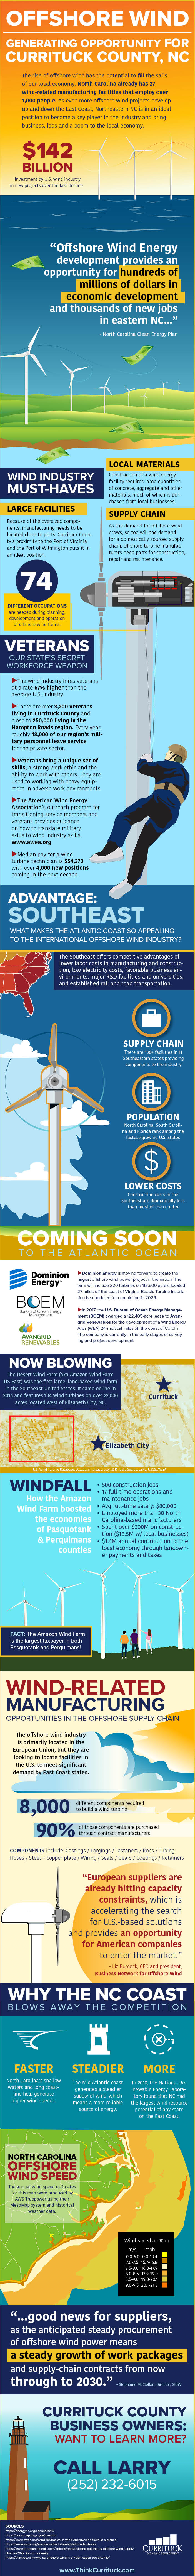 Offshore Wind Opportunities for Currituck County, NC